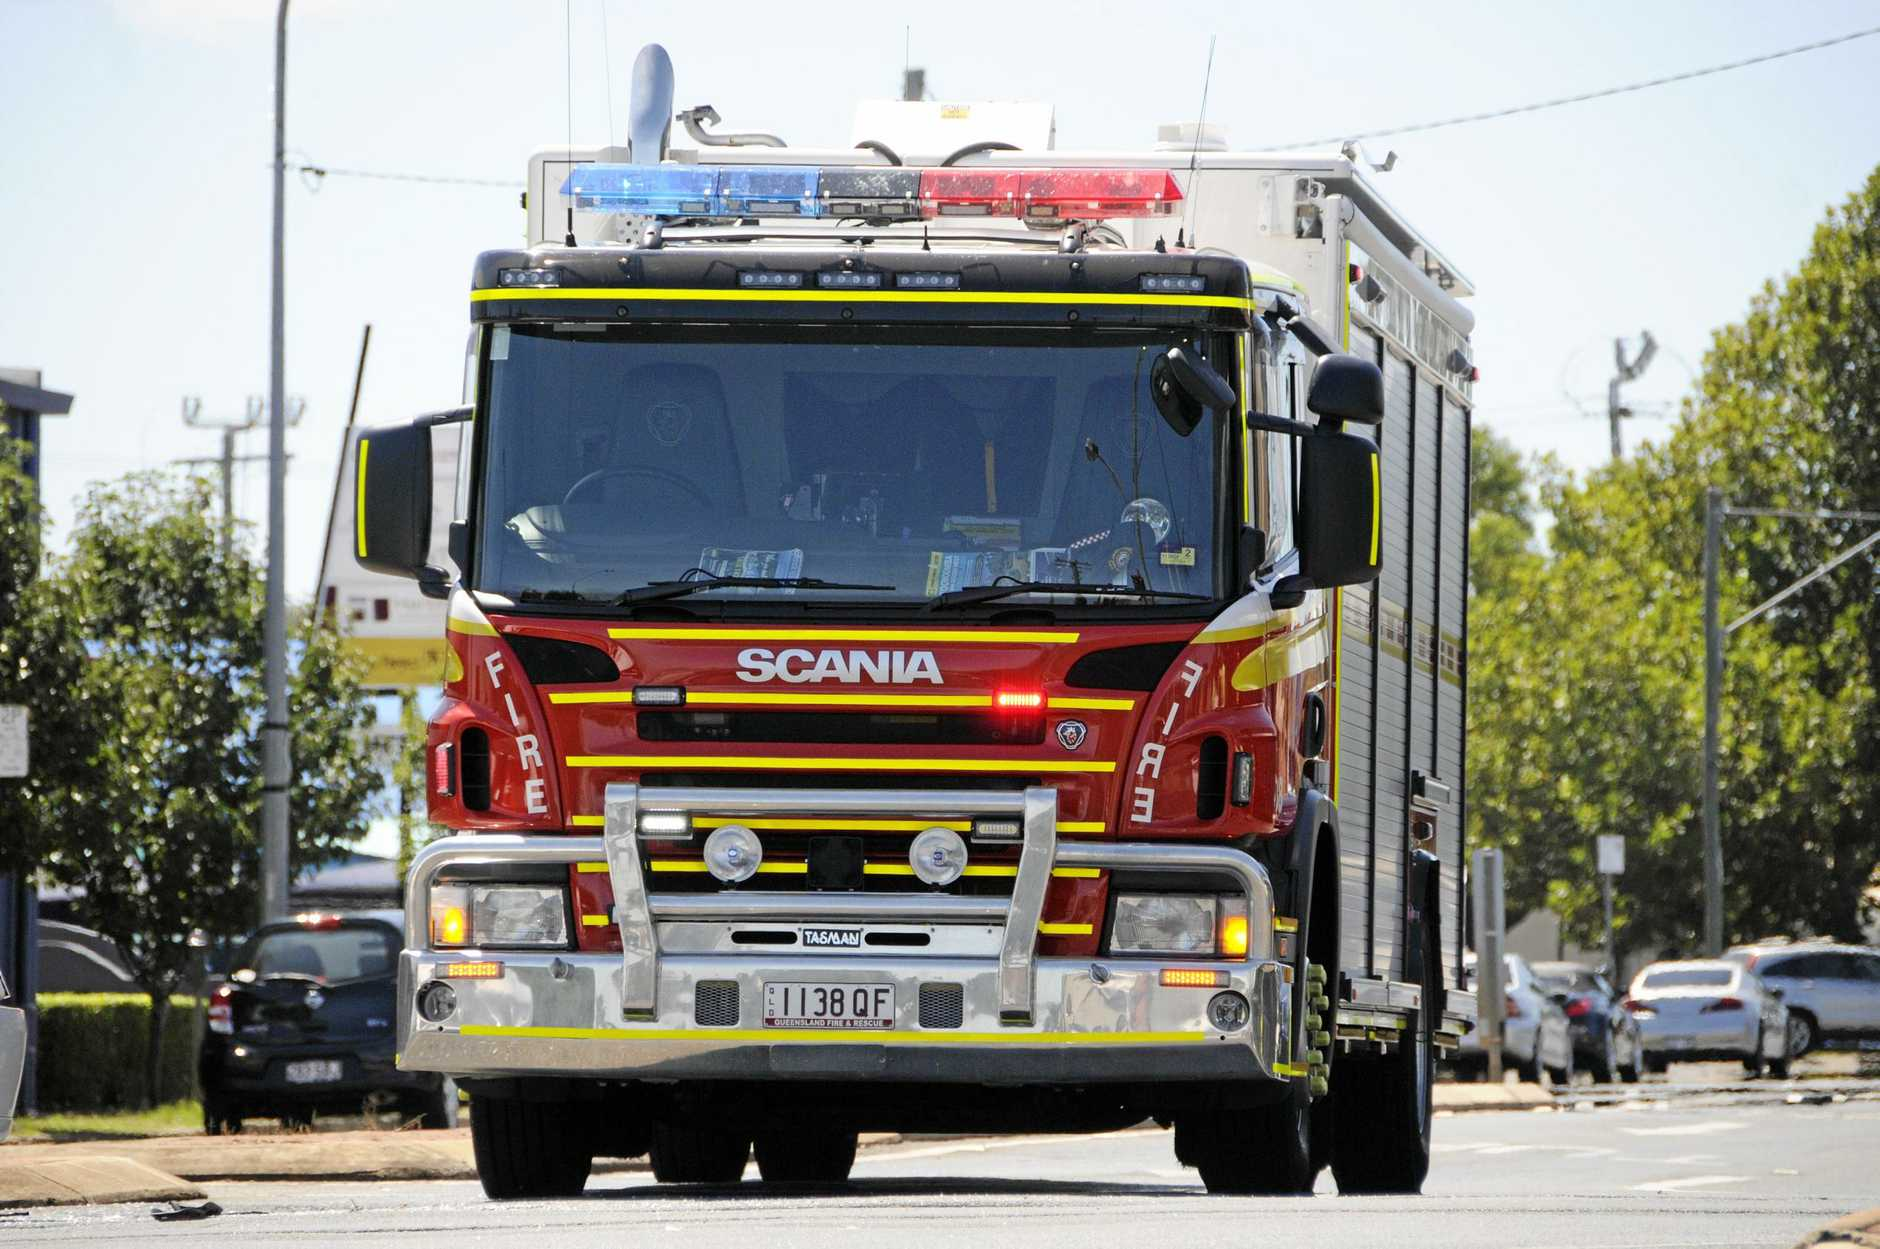 Emergency services are on the scene of an incident in Moranbah where a car crashed into a home.